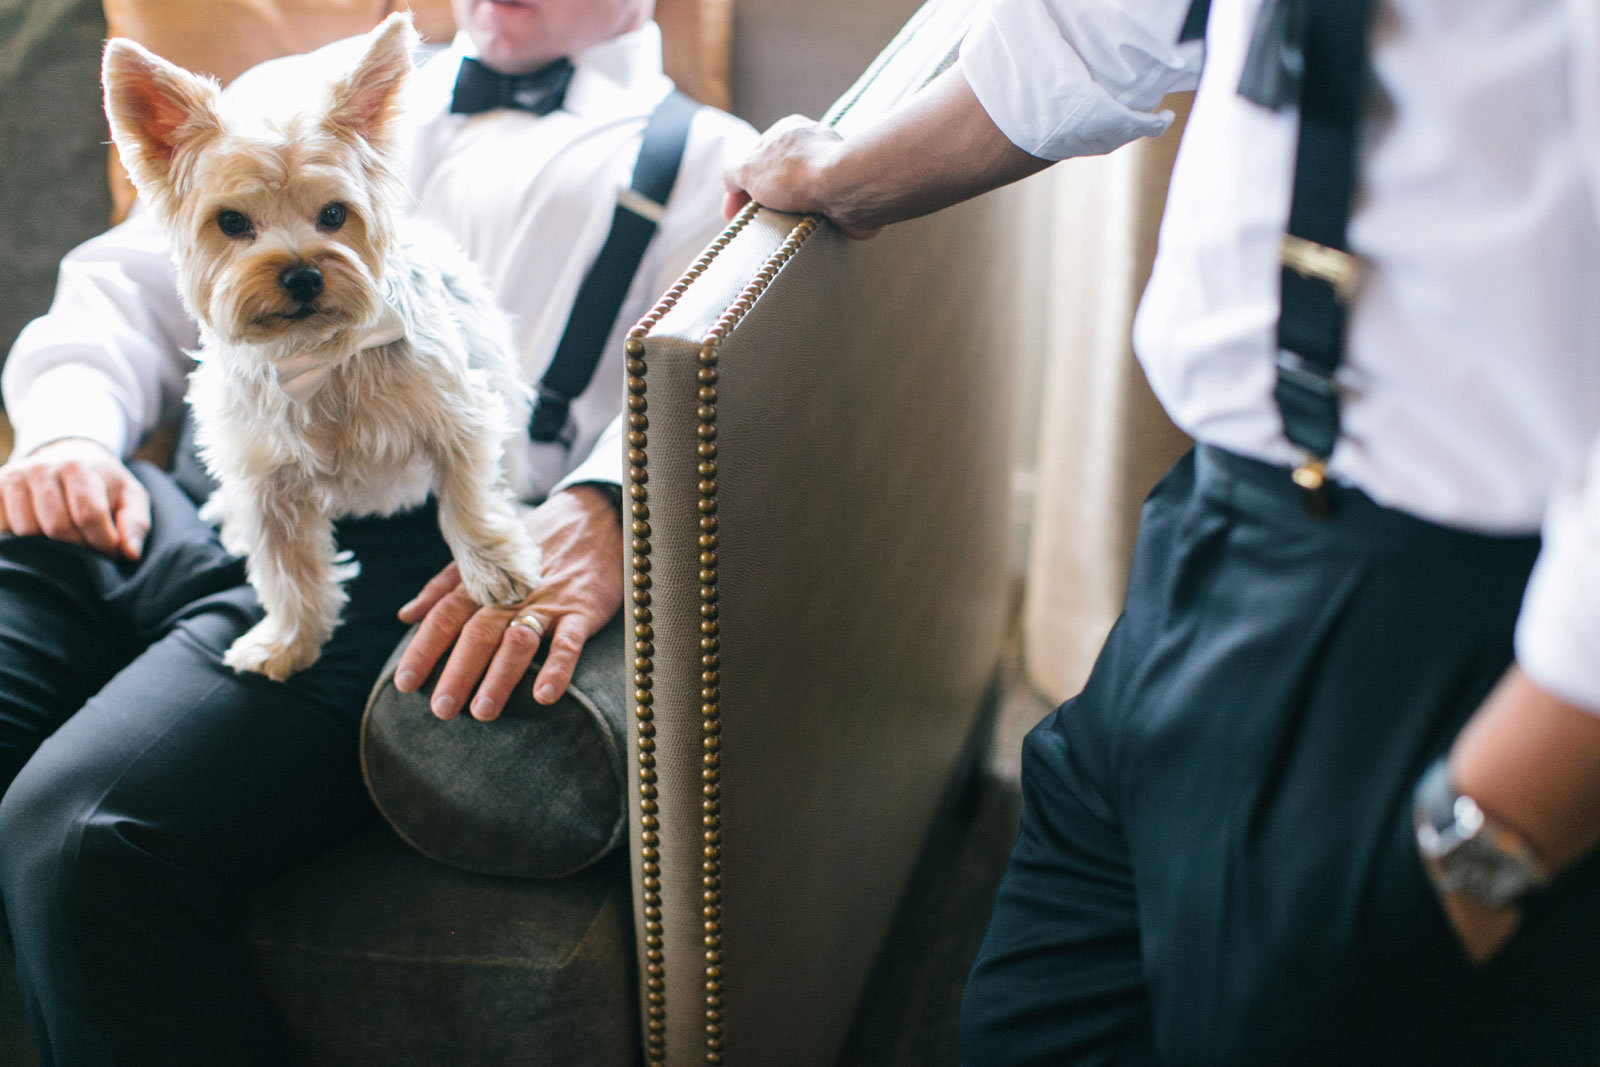 Groom's dog sits on his lap while both grooms get ready before the wedding